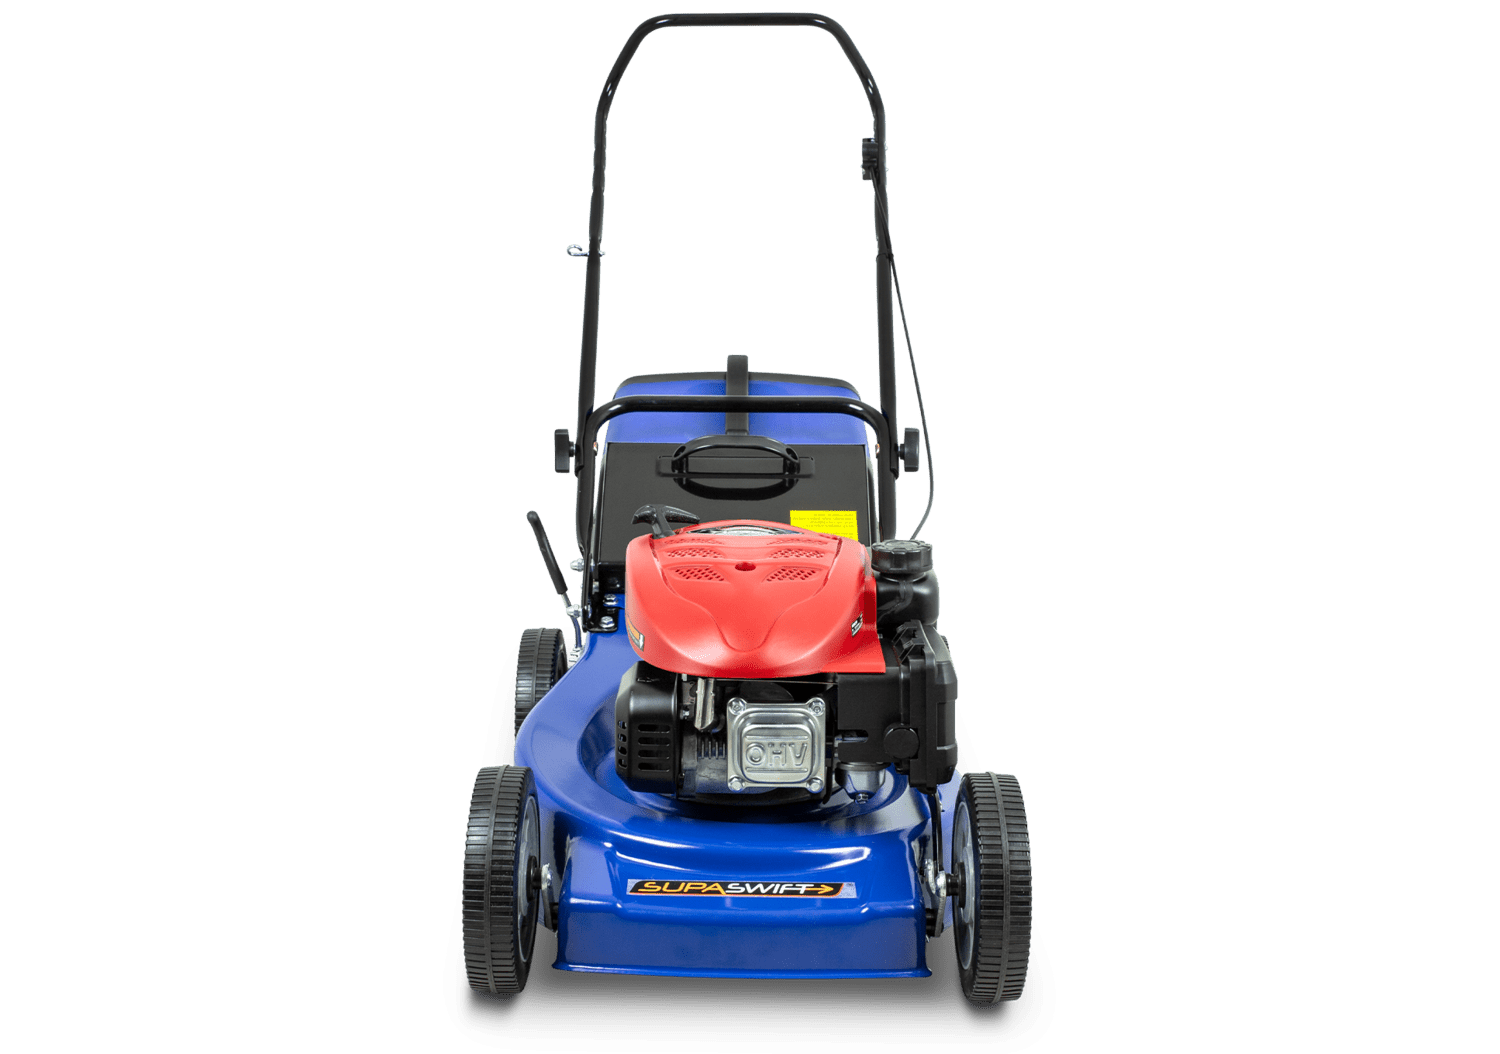 SupaSwift 777AMC 18″ Push Mower